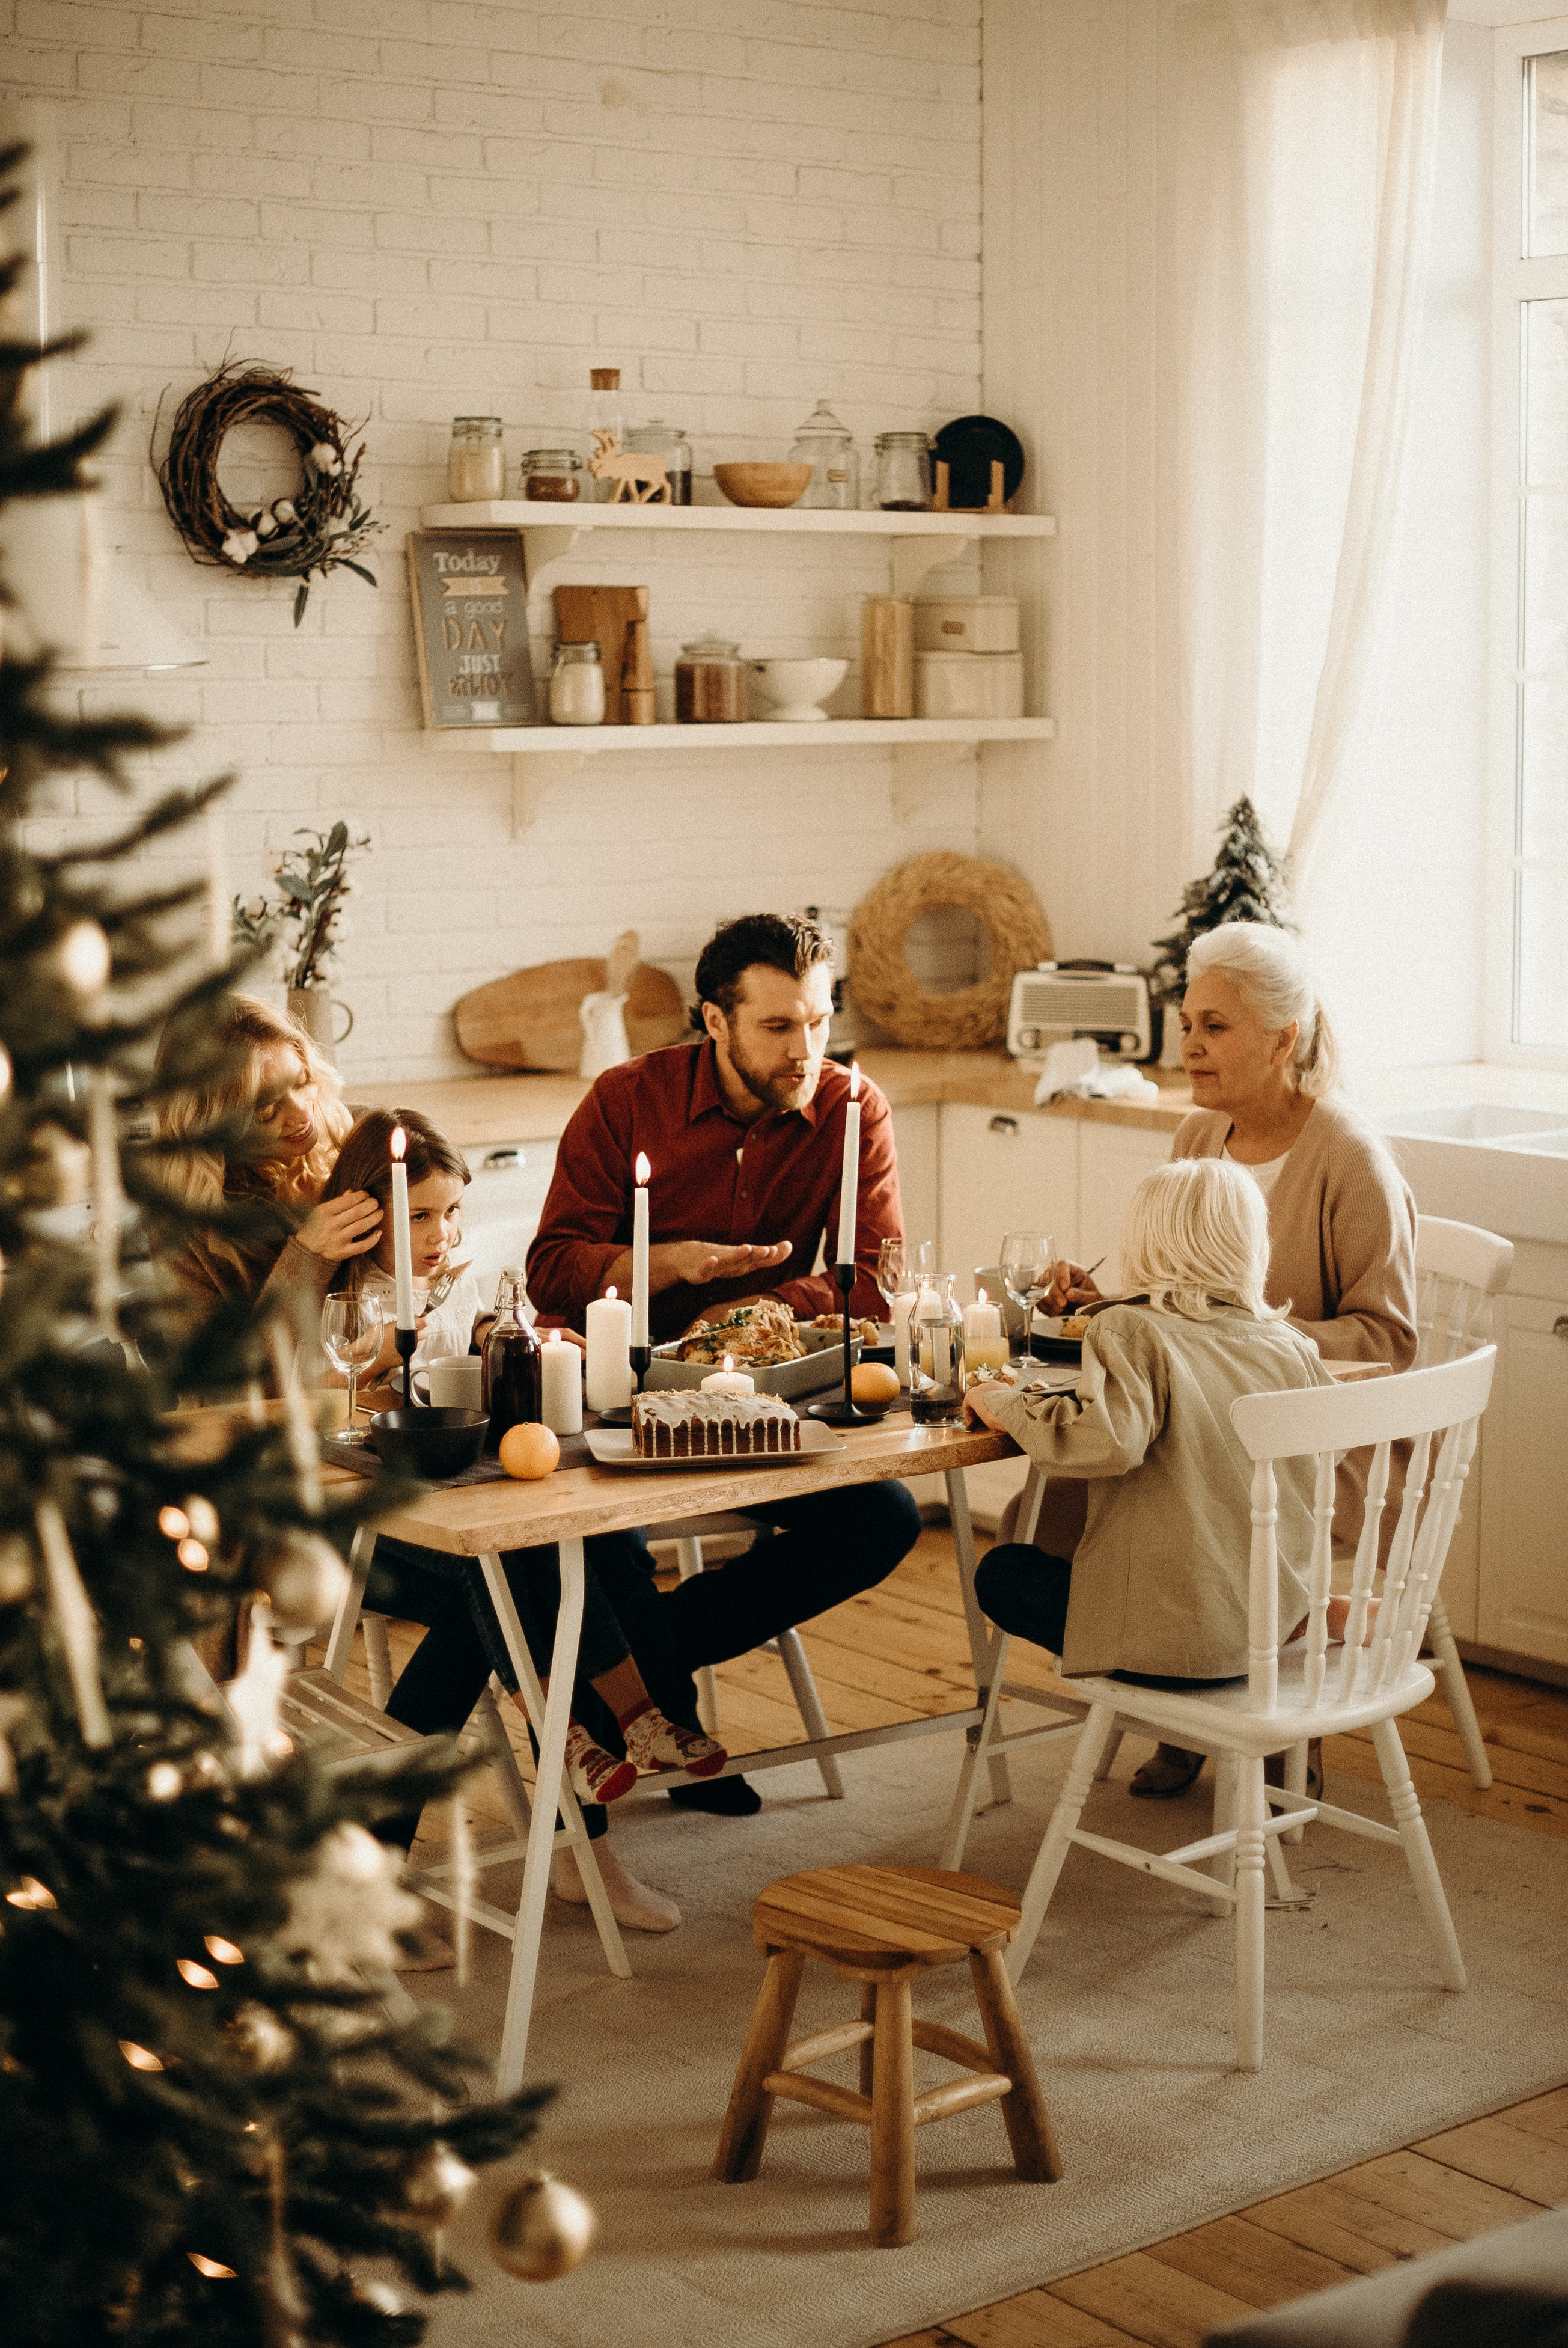 Making the Holidays Dementia-Friendly